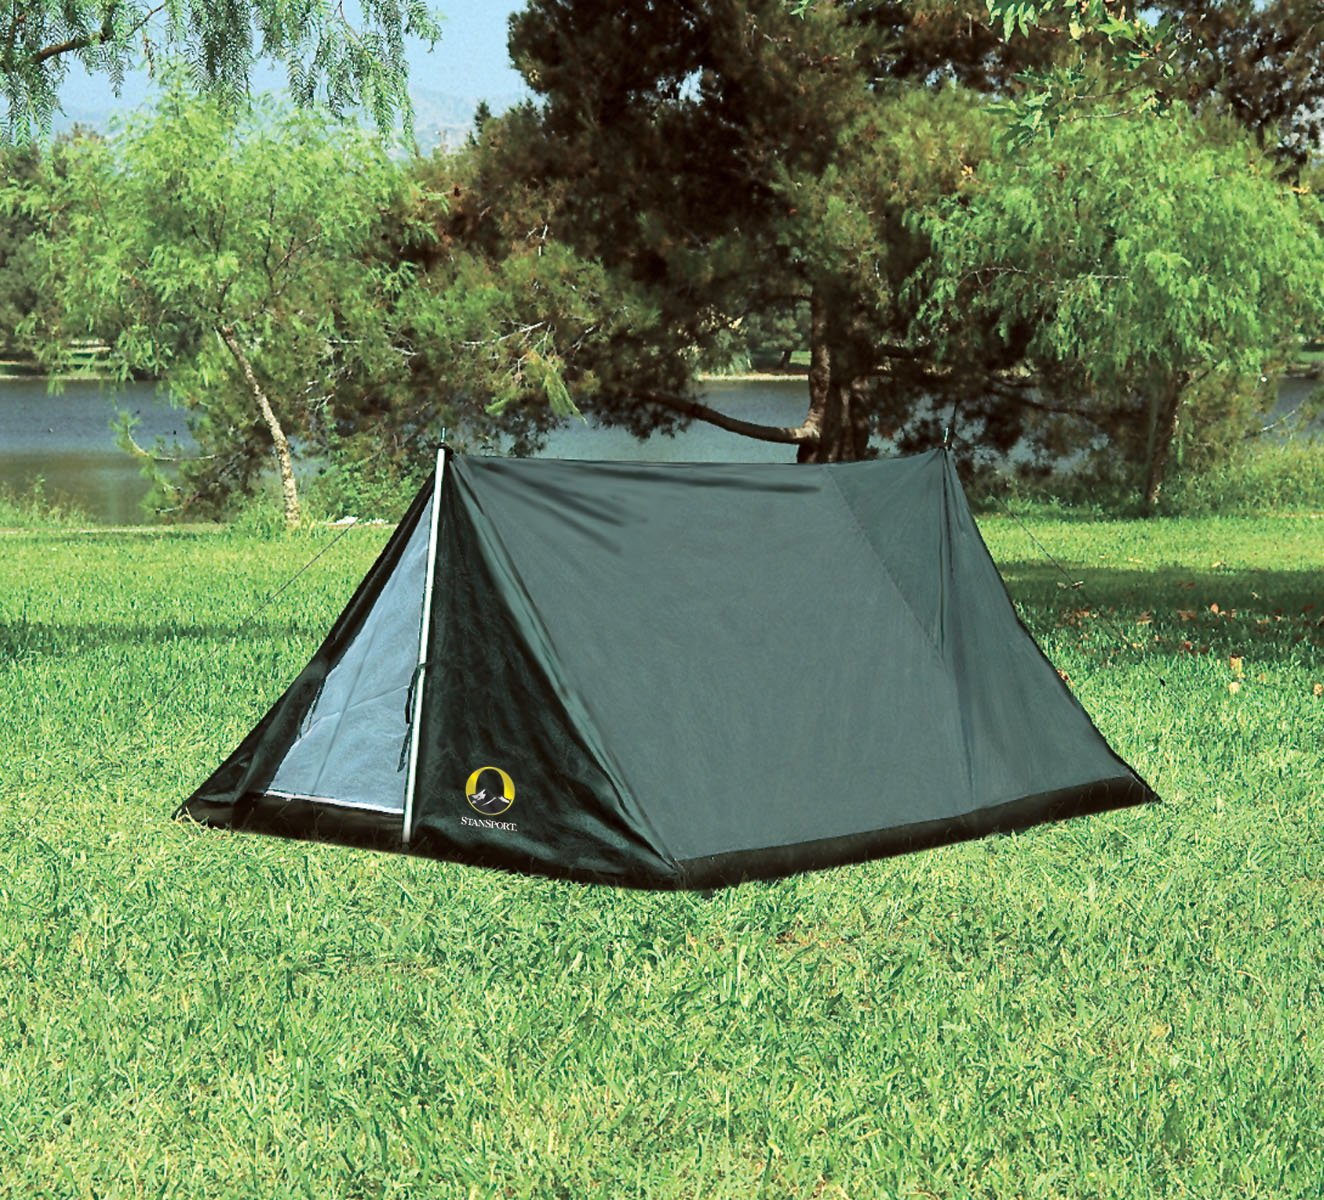 Amazon.com  Stansport Scout A-Frame Backpackers Tent Green  Pup Tent  Sports u0026 Outdoors & Amazon.com : Stansport Scout A-Frame Backpackers Tent Green : Pup ...